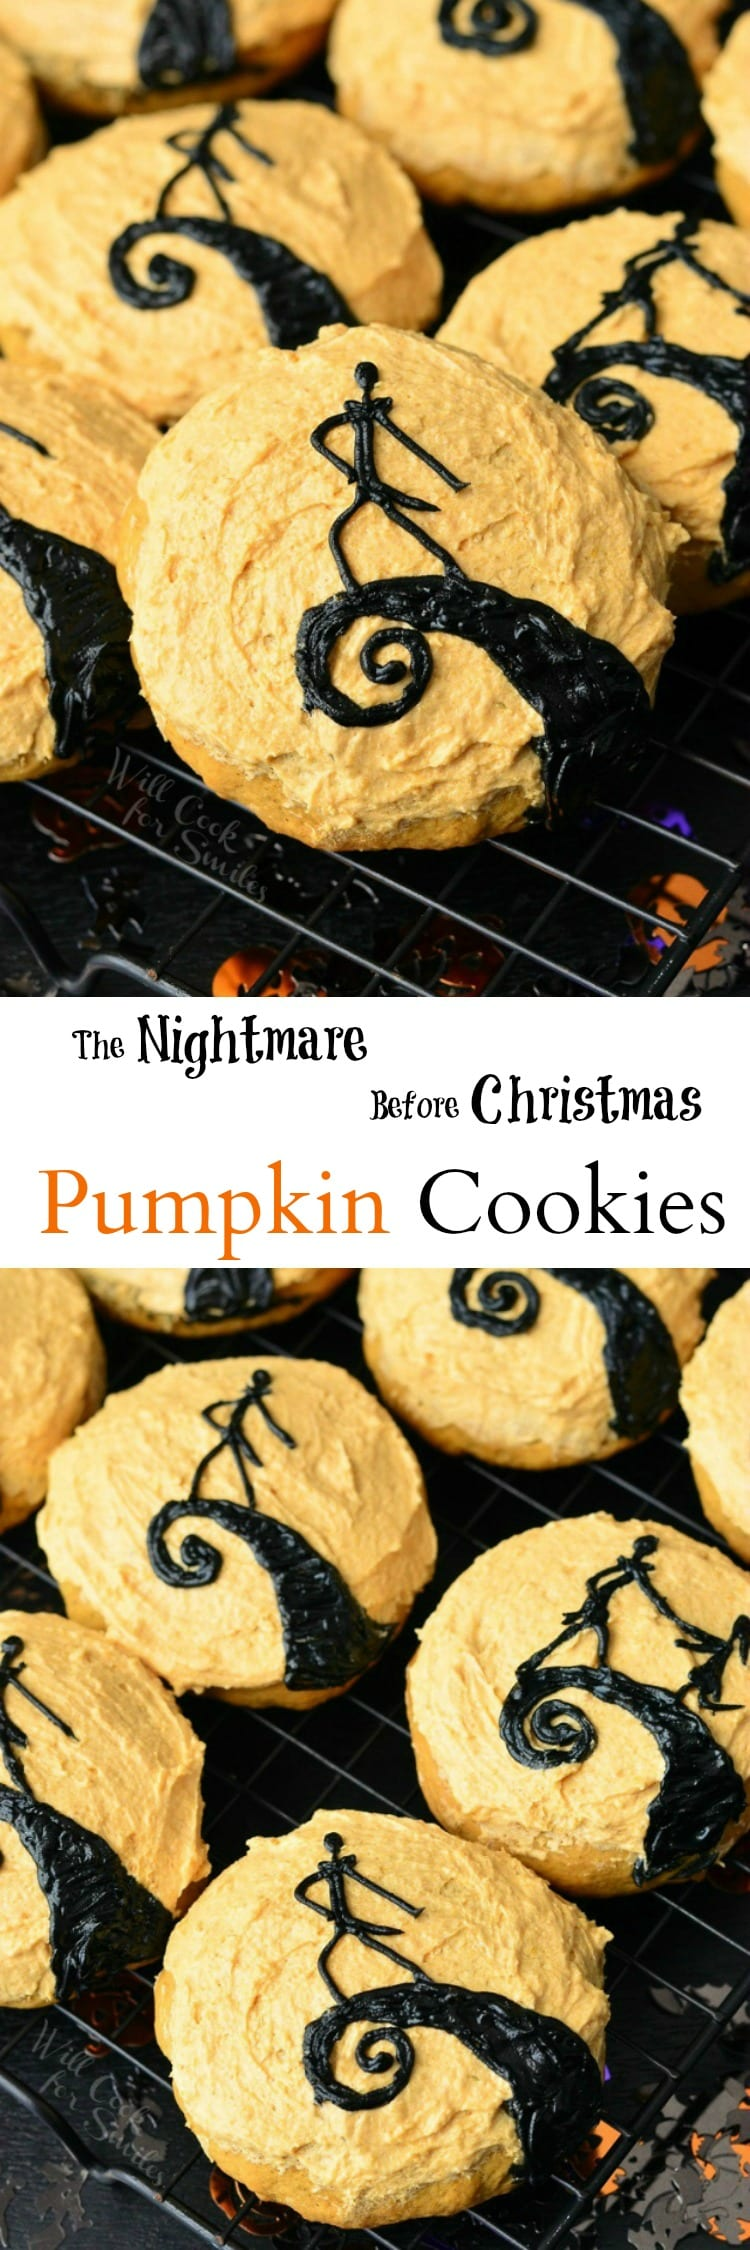 The Nightmare Before Christmas Pumpkin Cookies - Will Cook For Smiles